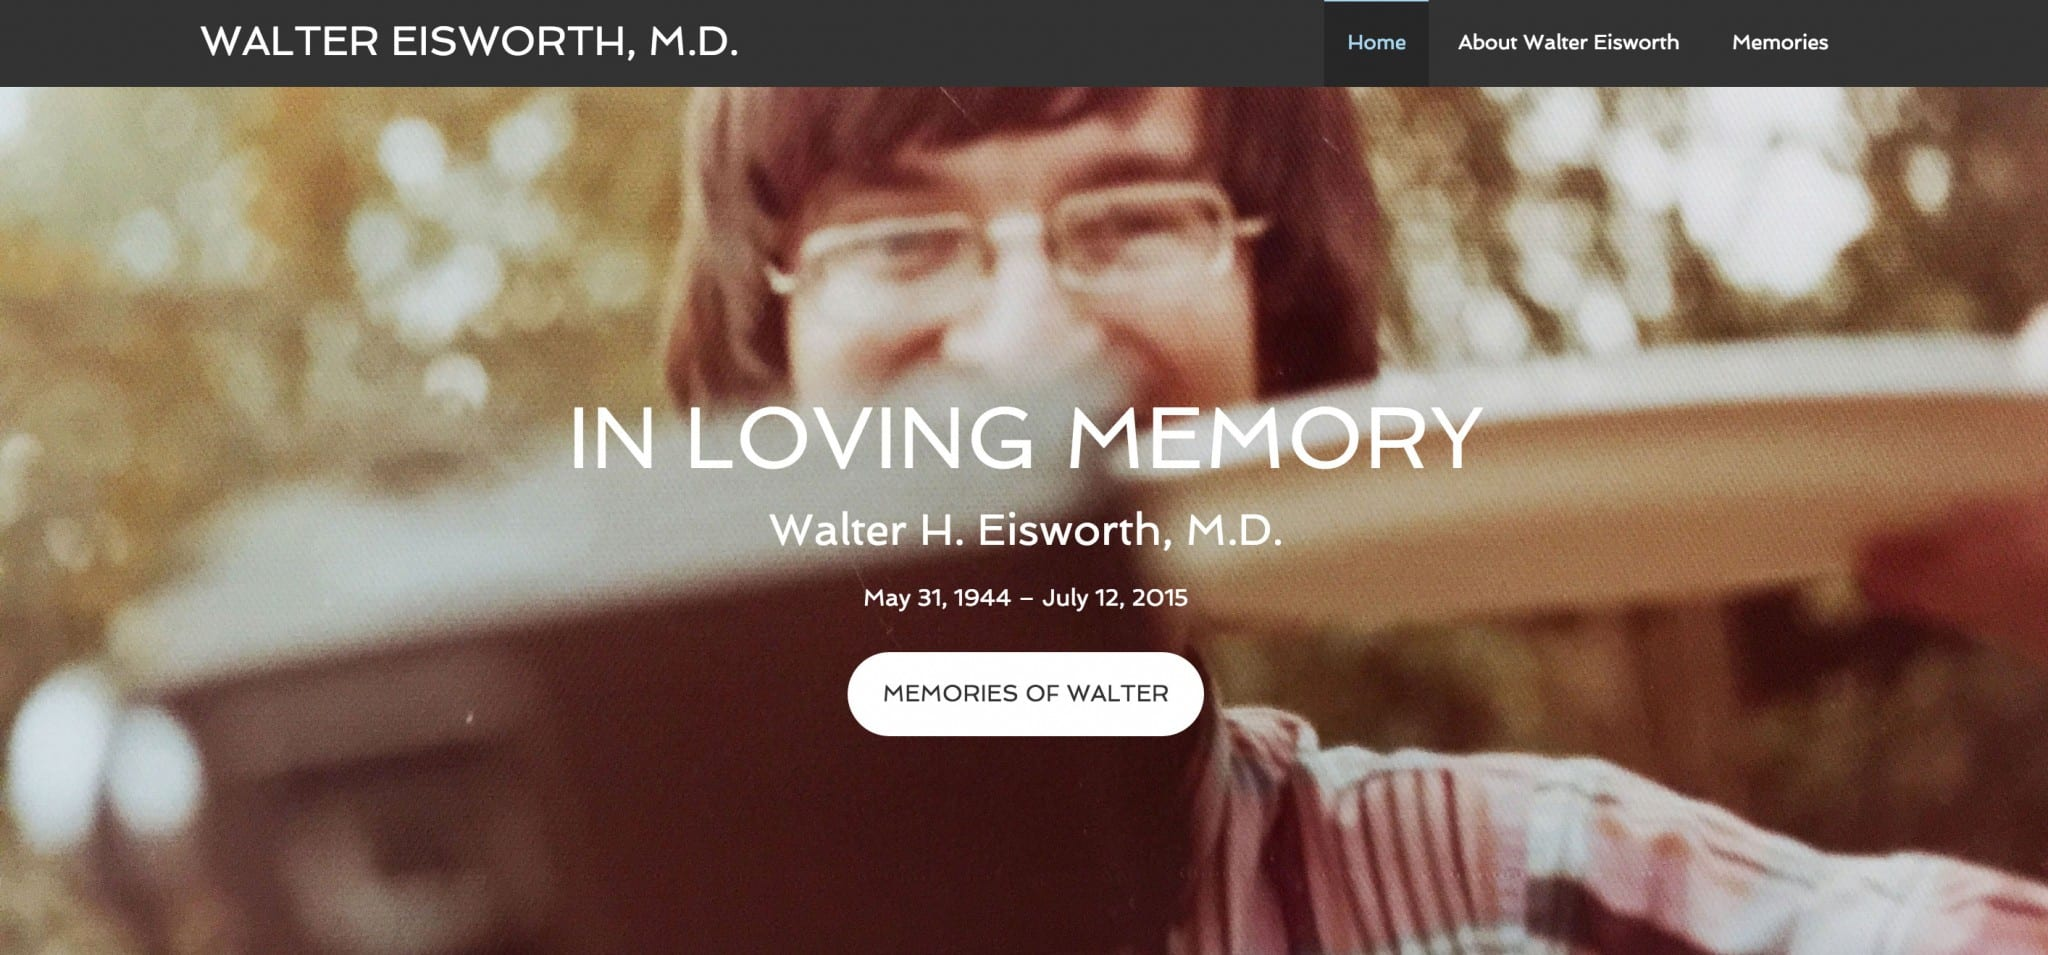 Agency Pro Theme Examples: Walter Eisworth, M.D.